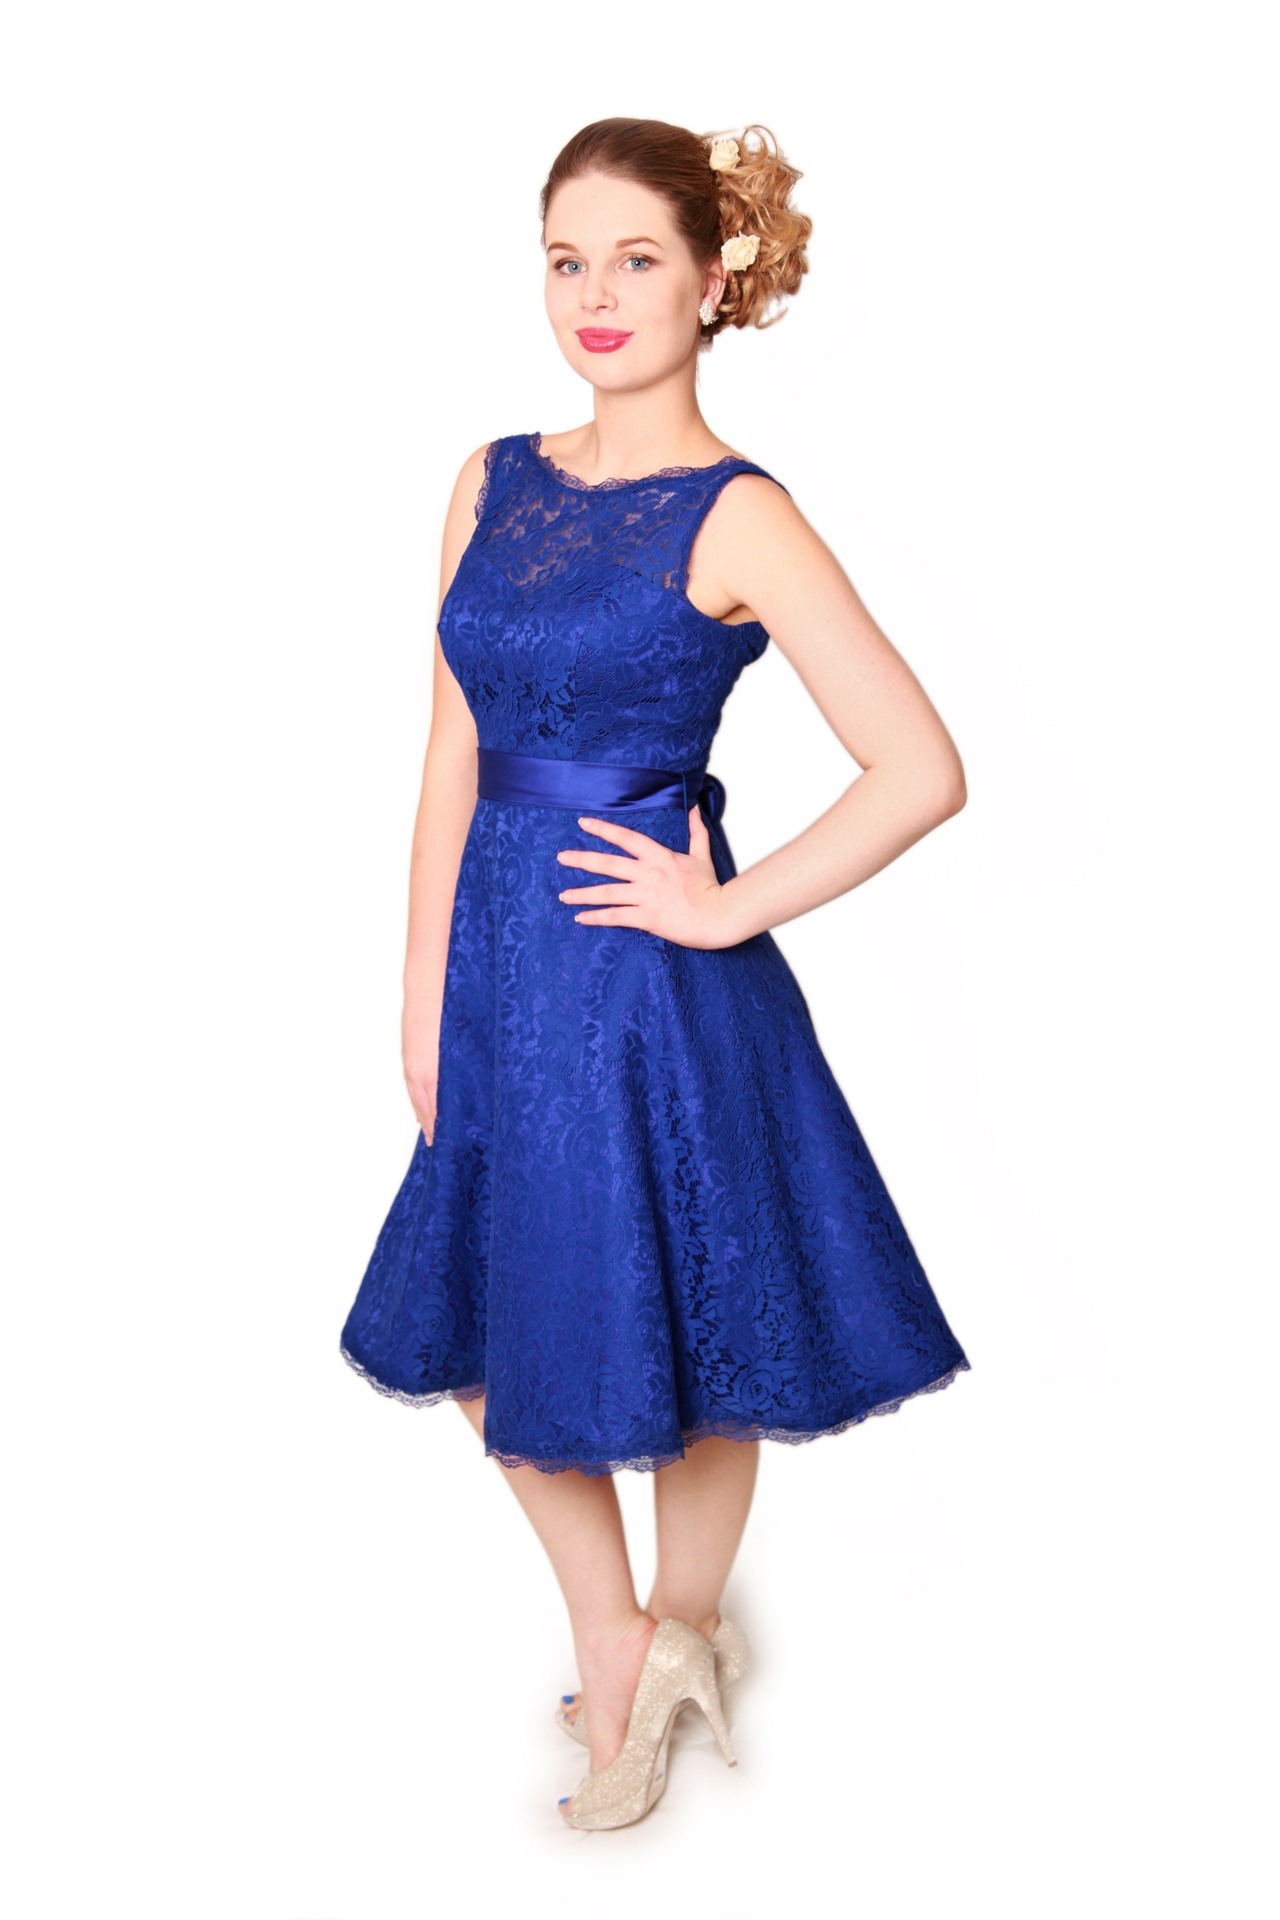 Bridesmaid dresses for different shapes and sizes embm09 royal blue slash neckline 50s style bridesmaids dress ombrellifo Image collections